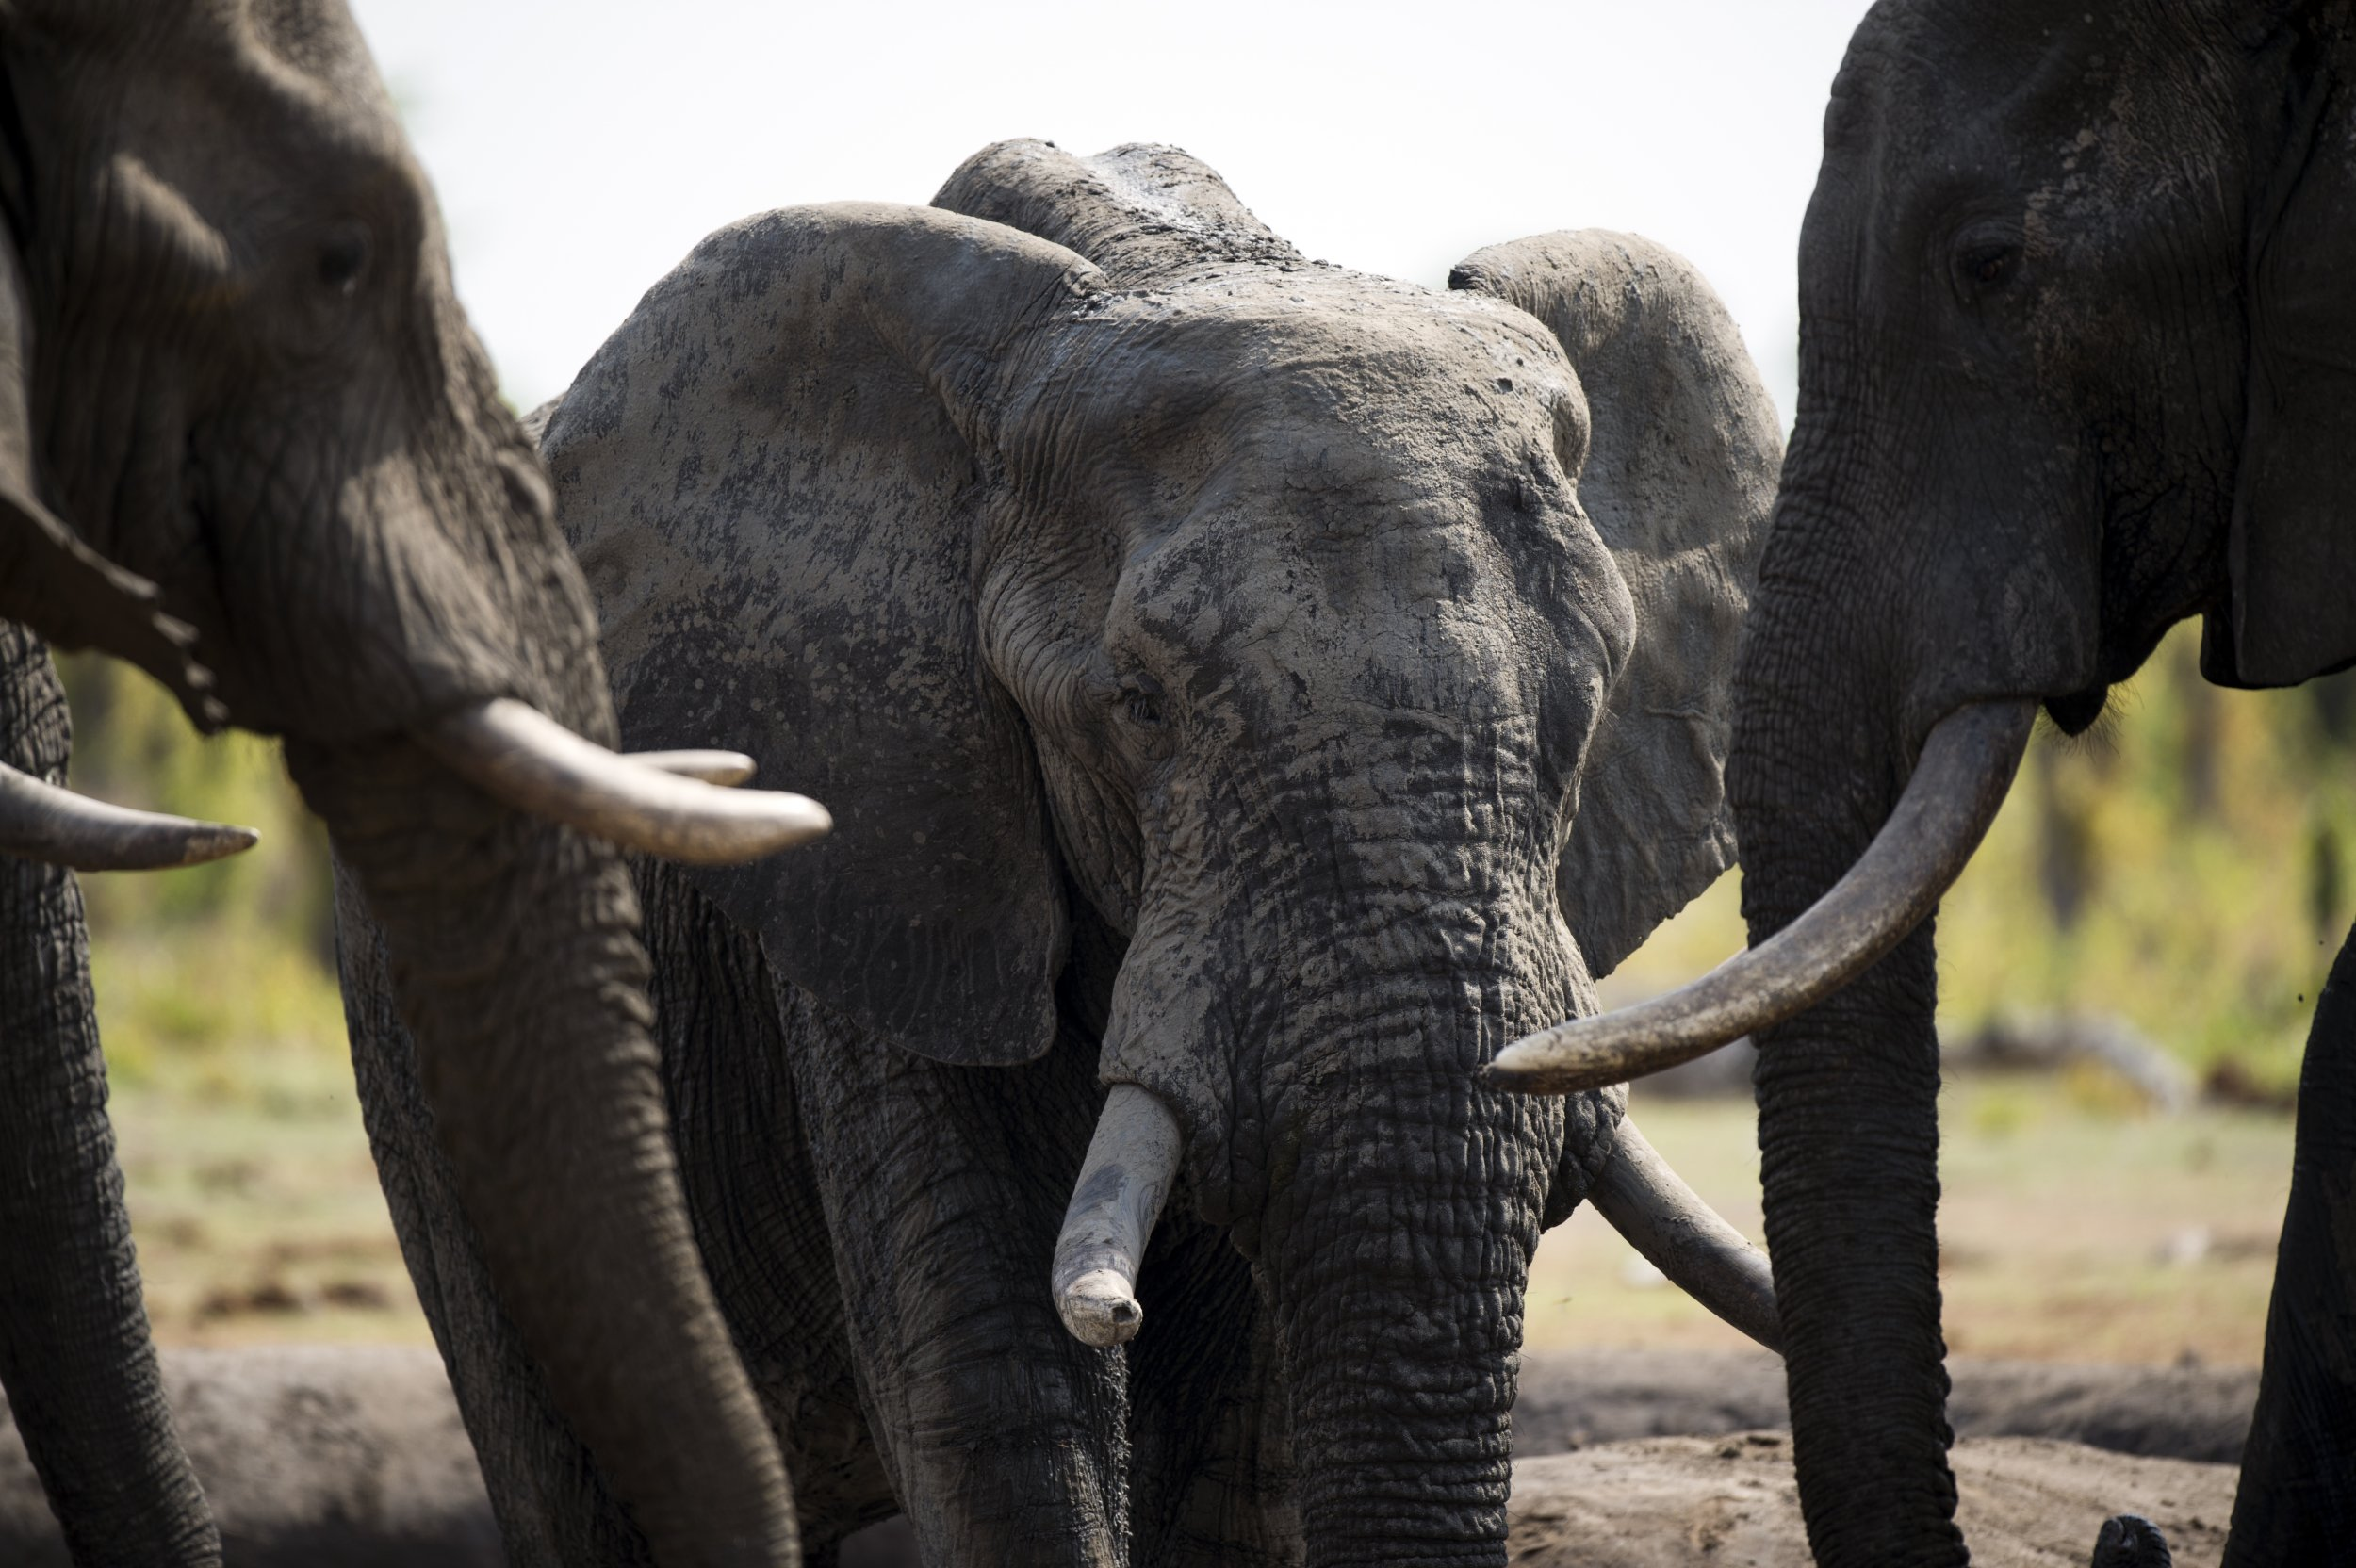 Poachers have killed 10 elephants in Zimbabwe with poison, hacking off their tusks